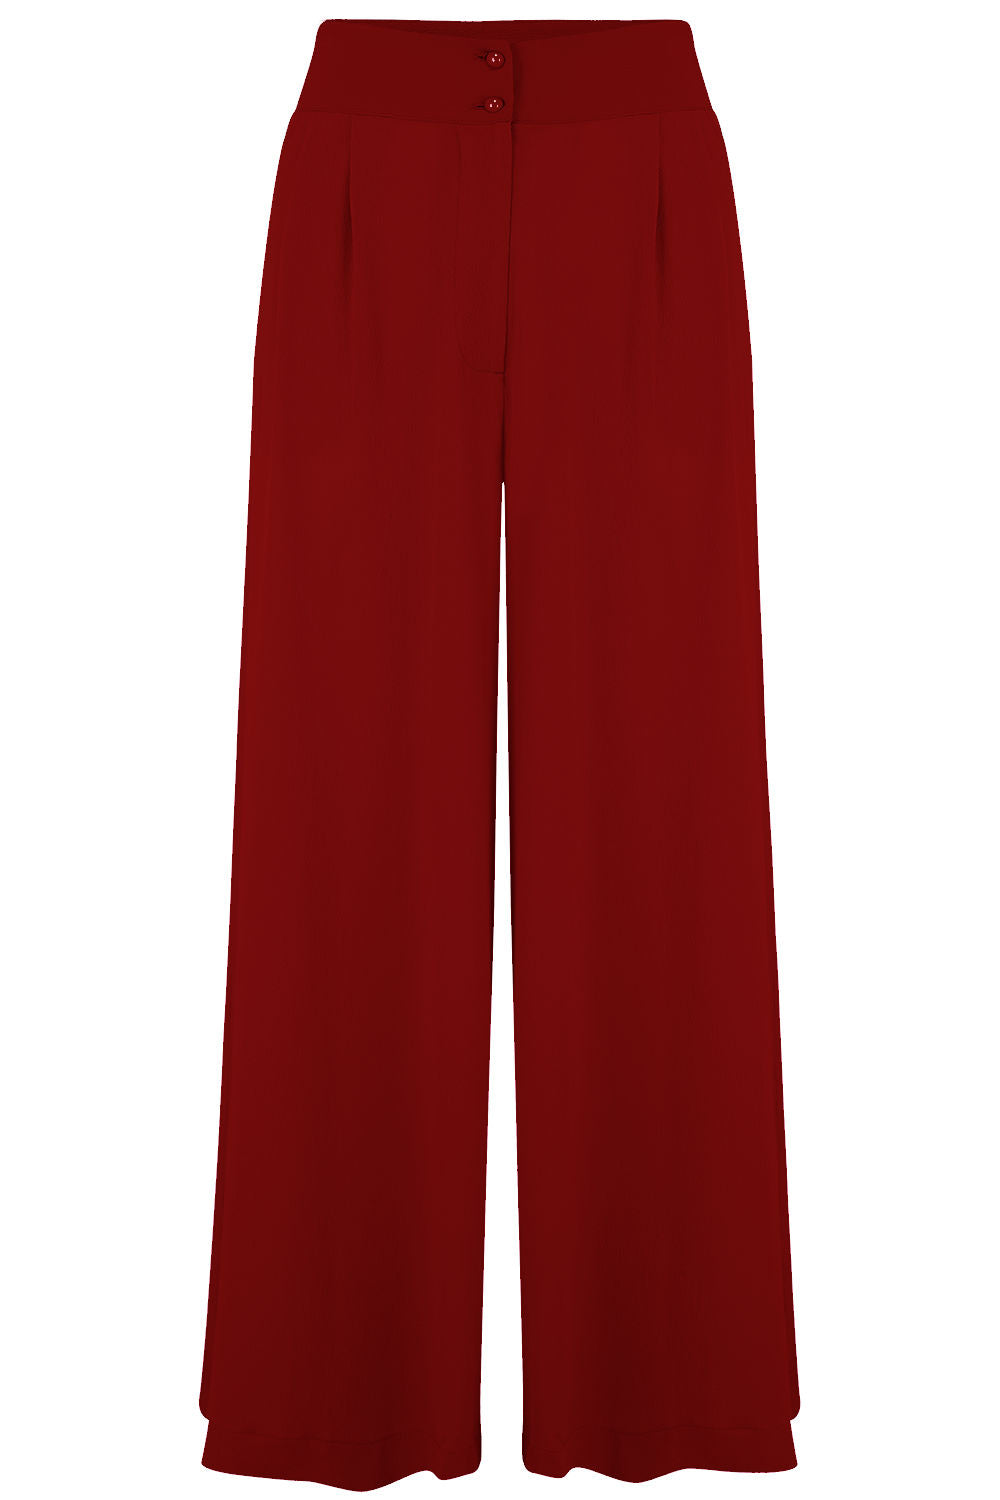 Vintage Wide Leg Pants & Beach Pajamas History The Sophia Plazzo Wide Leg Trousers in Wine Easy To Wear Vintage Inspired Style £39.00 AT vintagedancer.com